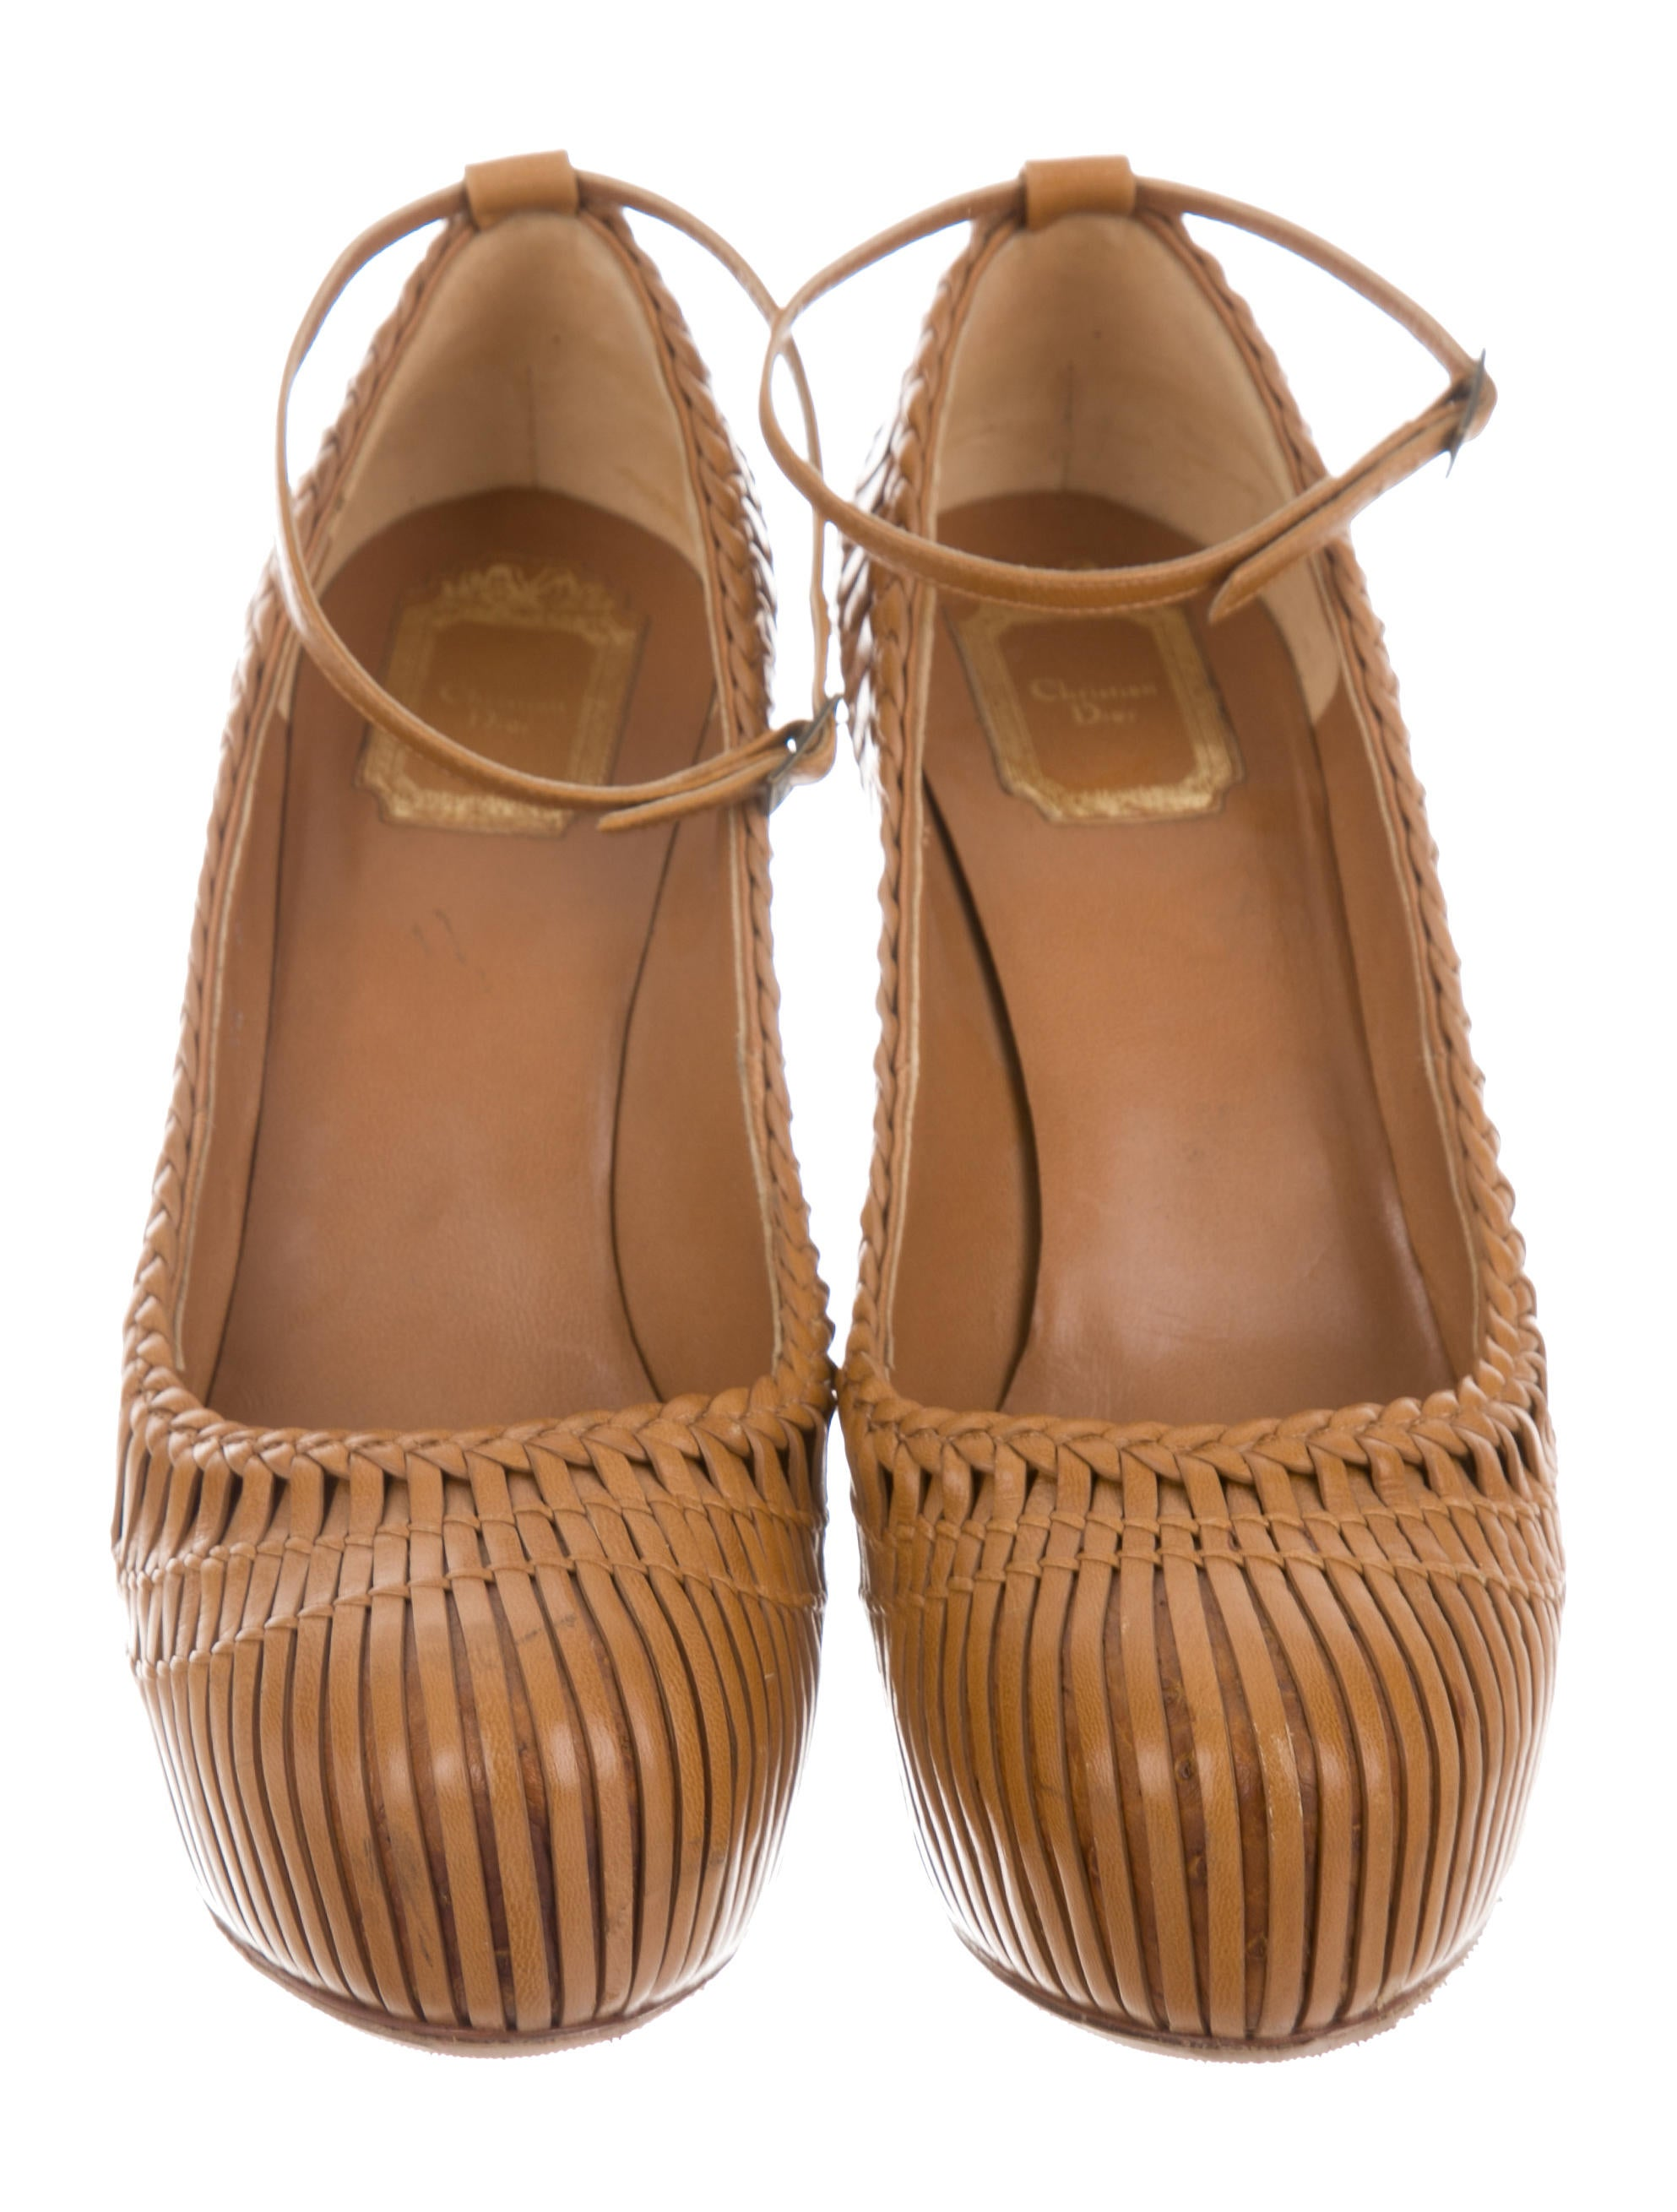 Christian Dior Ostrich-Trimmed Woven Pumps popular cheap price clearance Inexpensive 8s9yL6nC2M